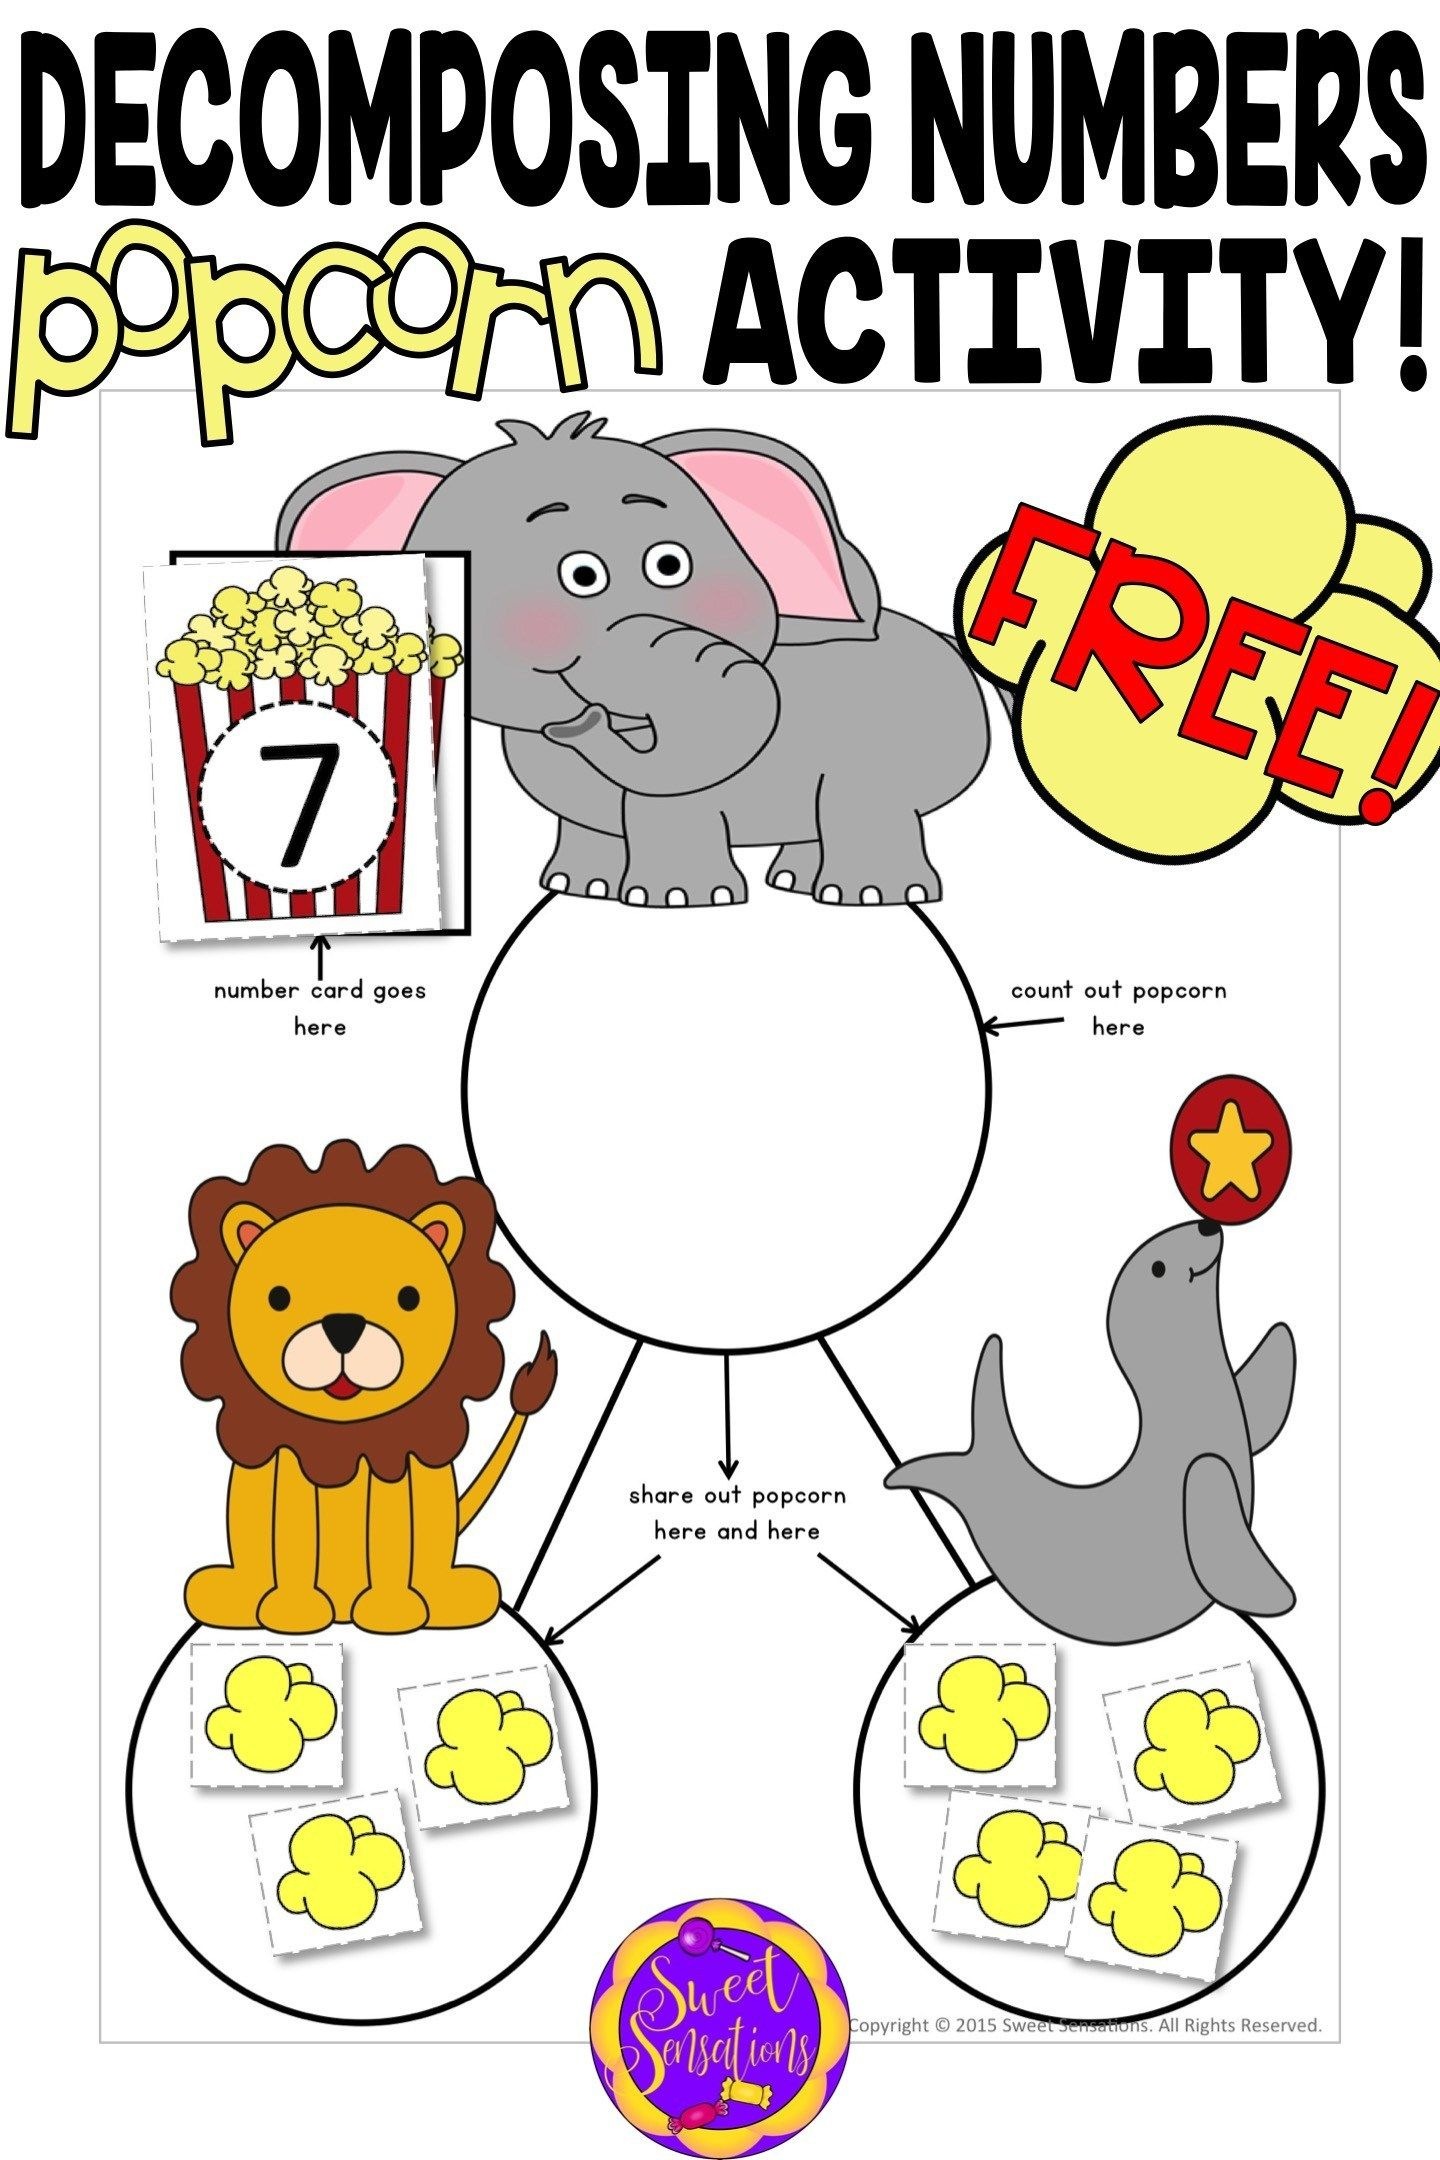 Use These Fun Free Downloads And Popcorn To Introduce Your Kindergarteners To Decompo Numbers Kindergarten Decomposing Numbers Kindergarten Decomposing Numbers [ 2160 x 1440 Pixel ]